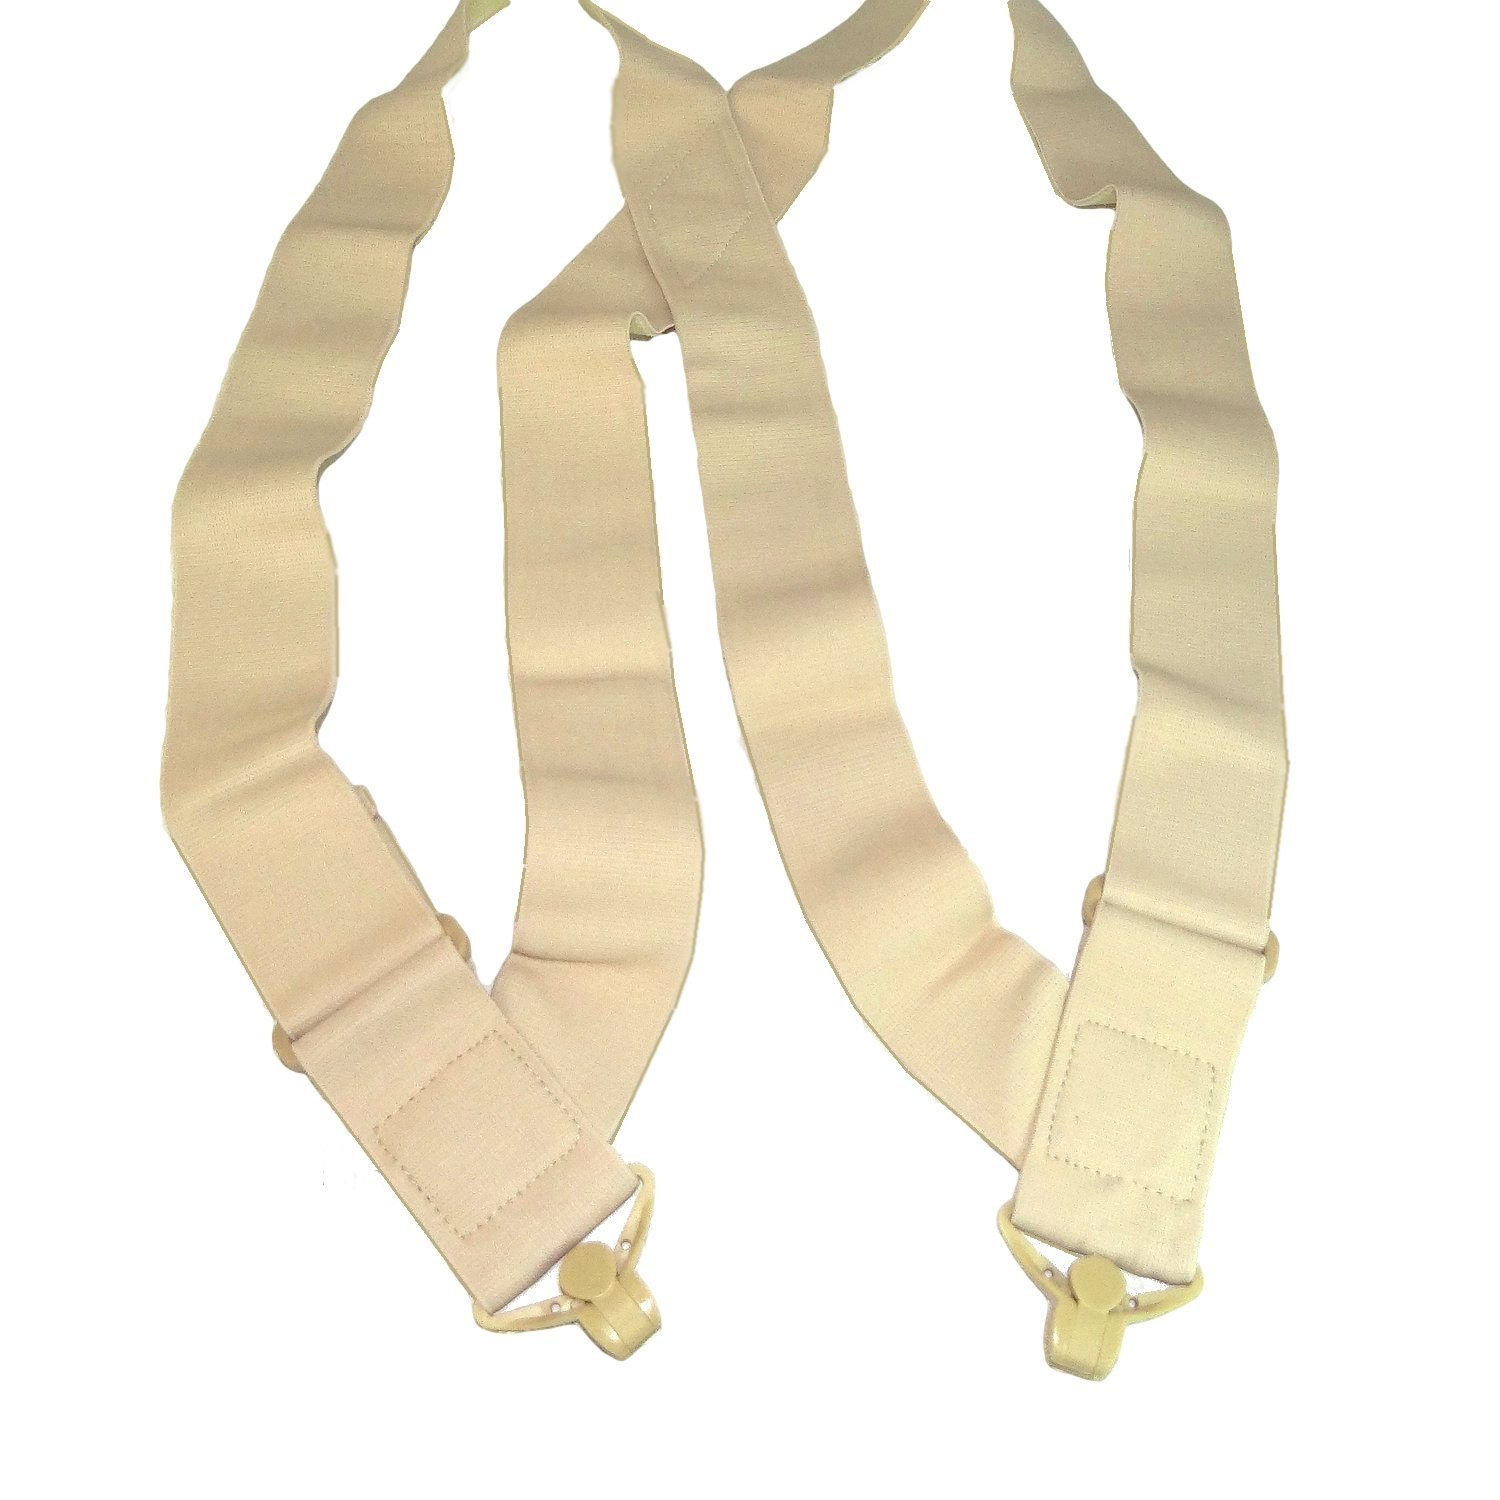 Holdup Brand 2 Wide Light Tan Under-Up Suspenders with Patented Jumbo Tan Gripper Clasp Holdup Suspender Company Inc 6506HP